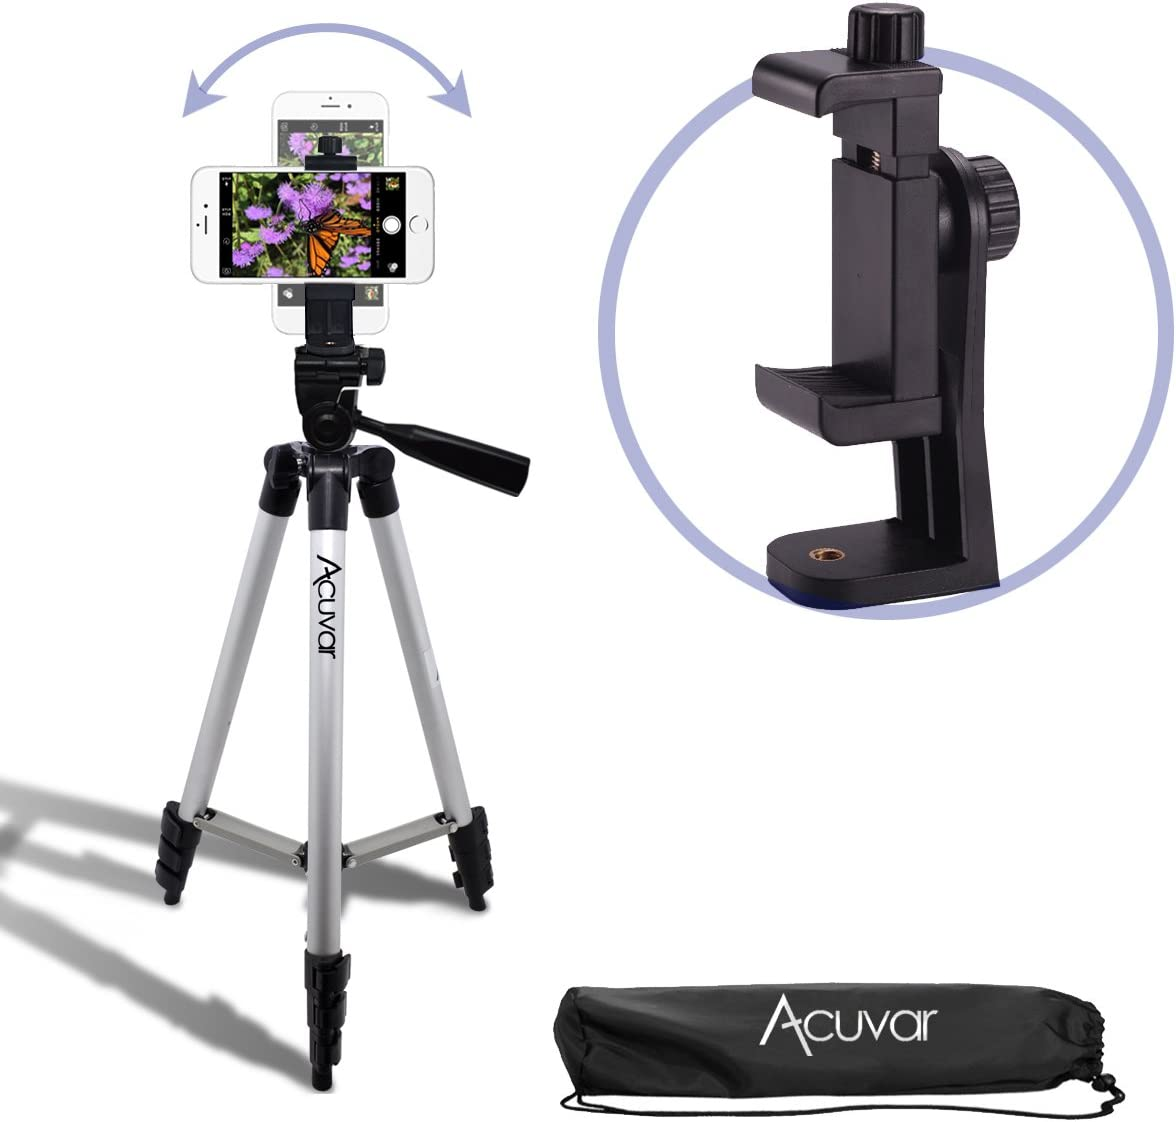 """Acuvar 50"""" Smartphone/Camera Tripod with Rotating Mount. Fits iPhone X, 8, 8+, 7, 7 Plus, 6, 6 Plus, 5s Samsung Galaxy, Android, etc."""